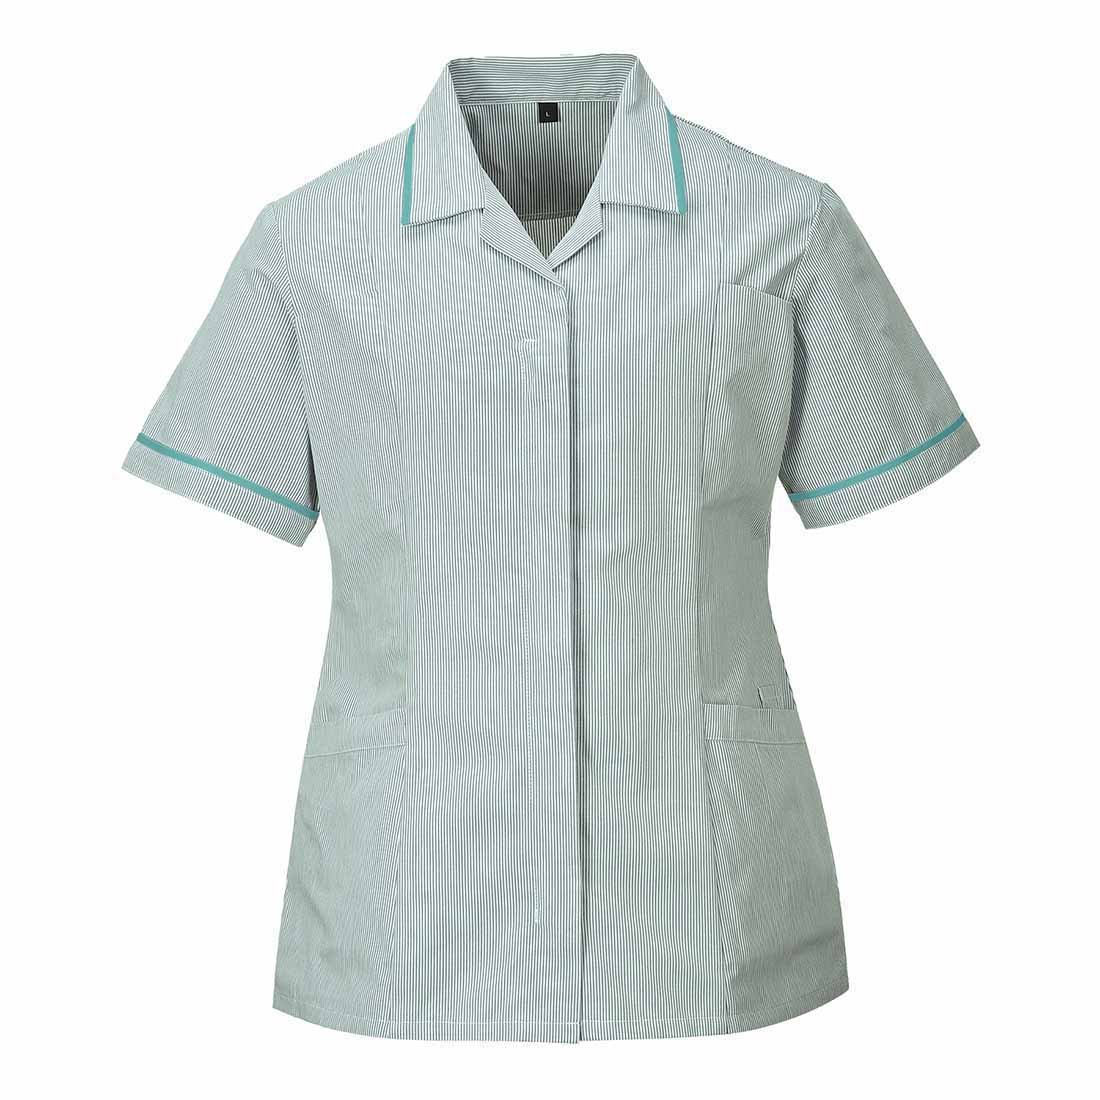 AS21HBRS Portwest AS21-Blouse Antistatique ESD Polo